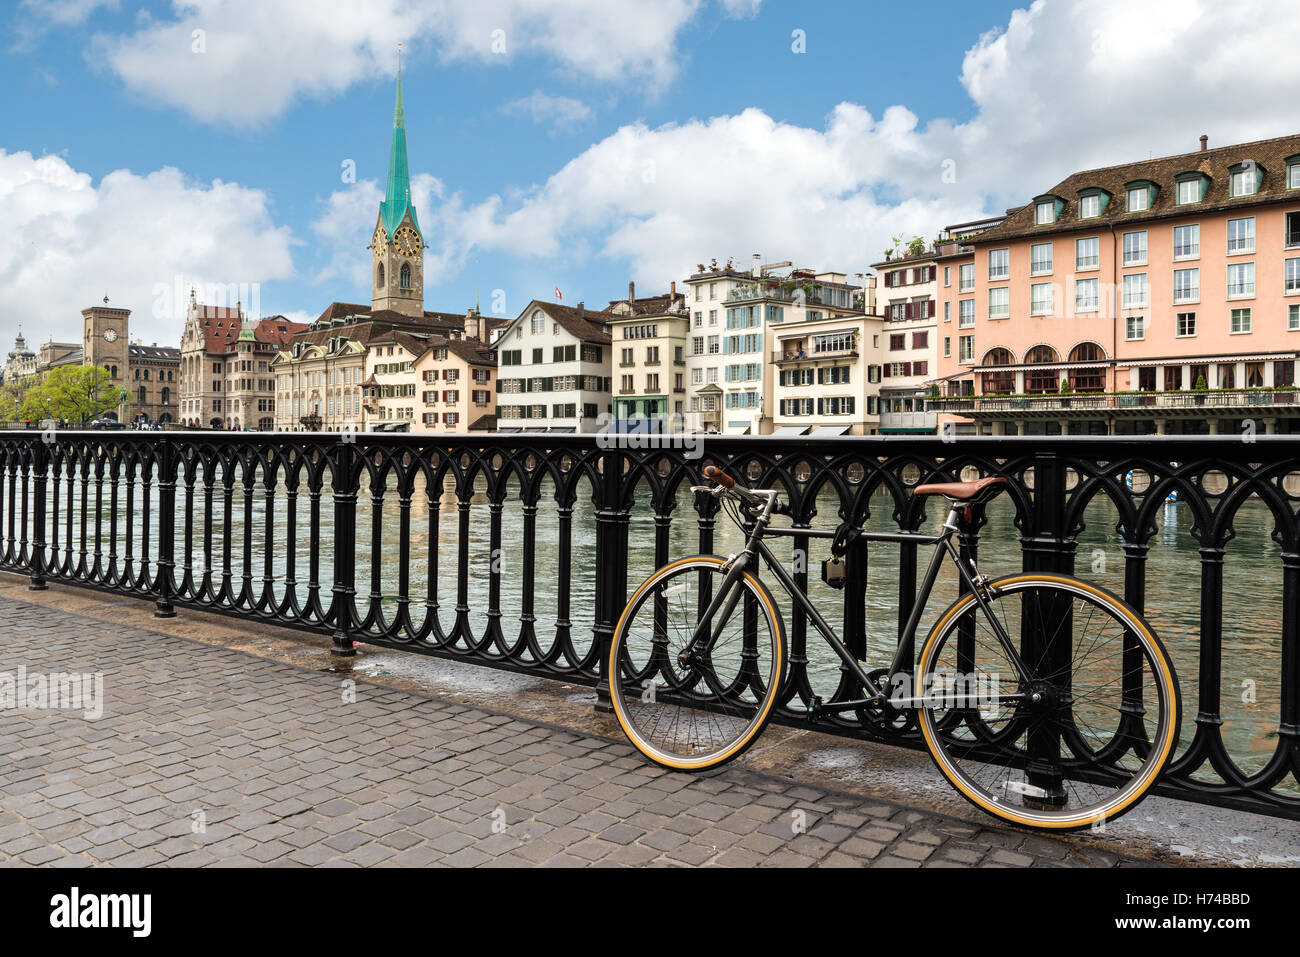 View of Zurich on Fraumunster Church and Church of St. Peter with bicycle in Zurich, Switzerland. - Stock Image